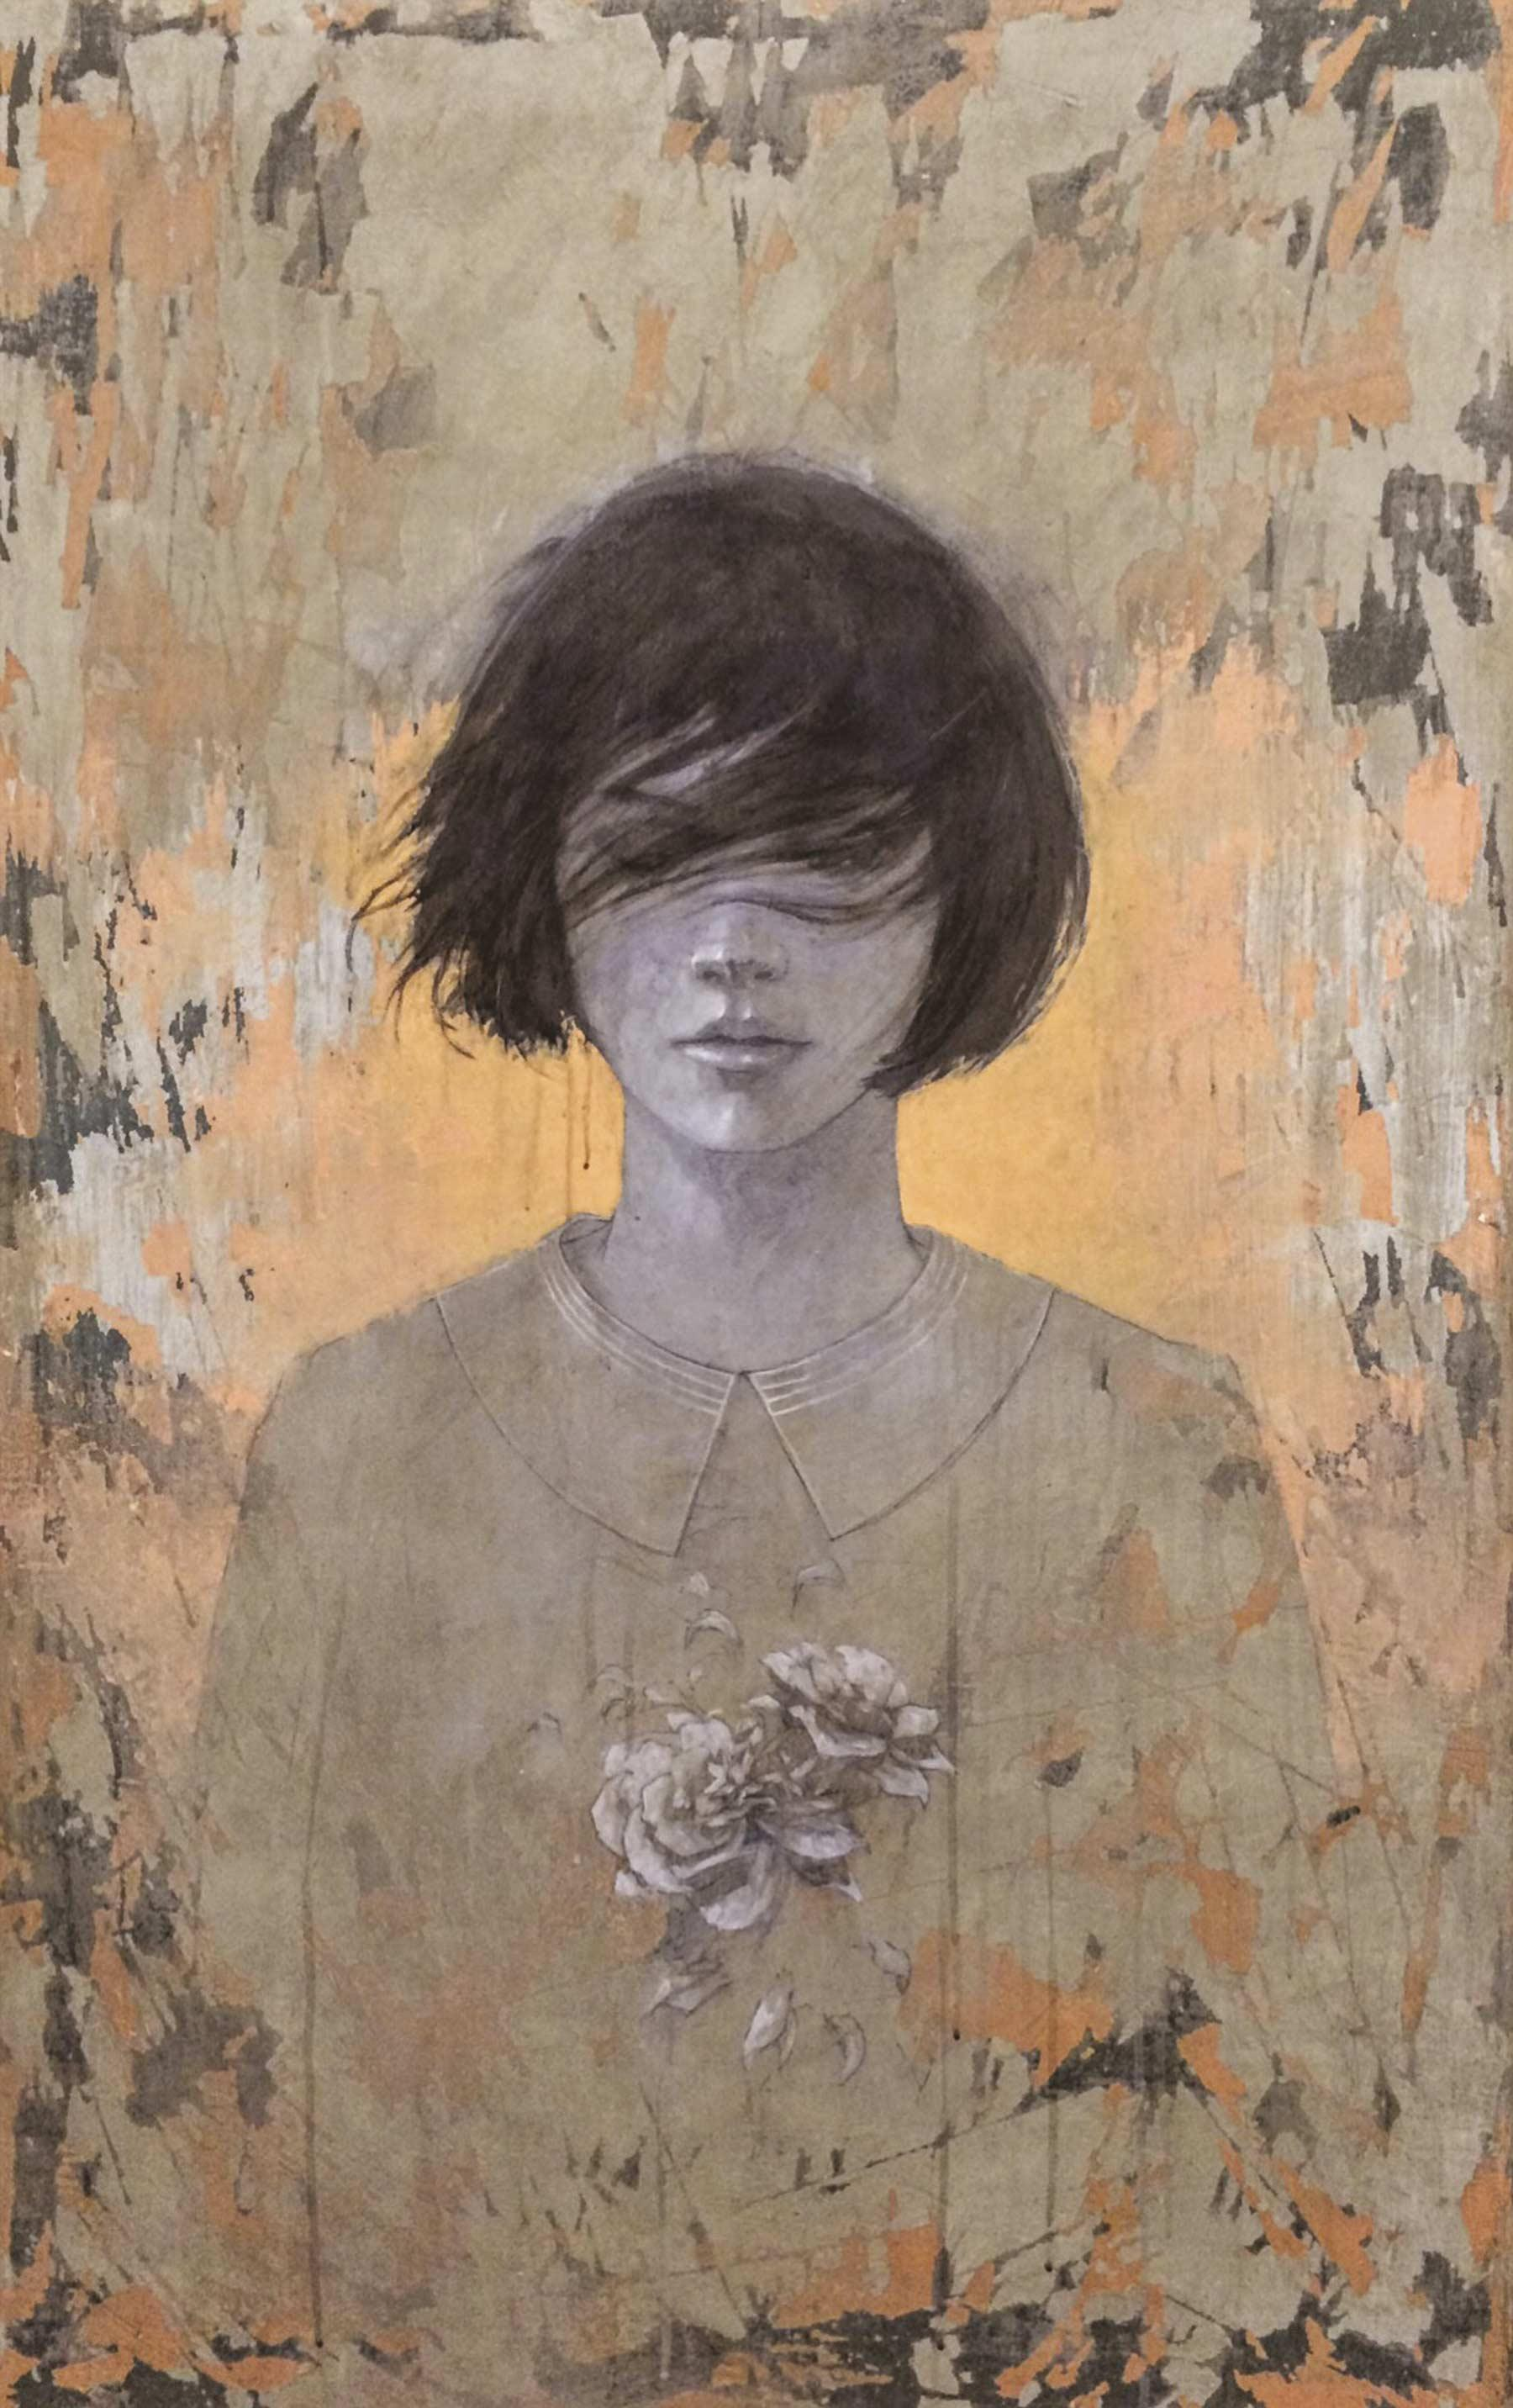 FEDERICO INFANTE | WE CAN SEE THE WIND